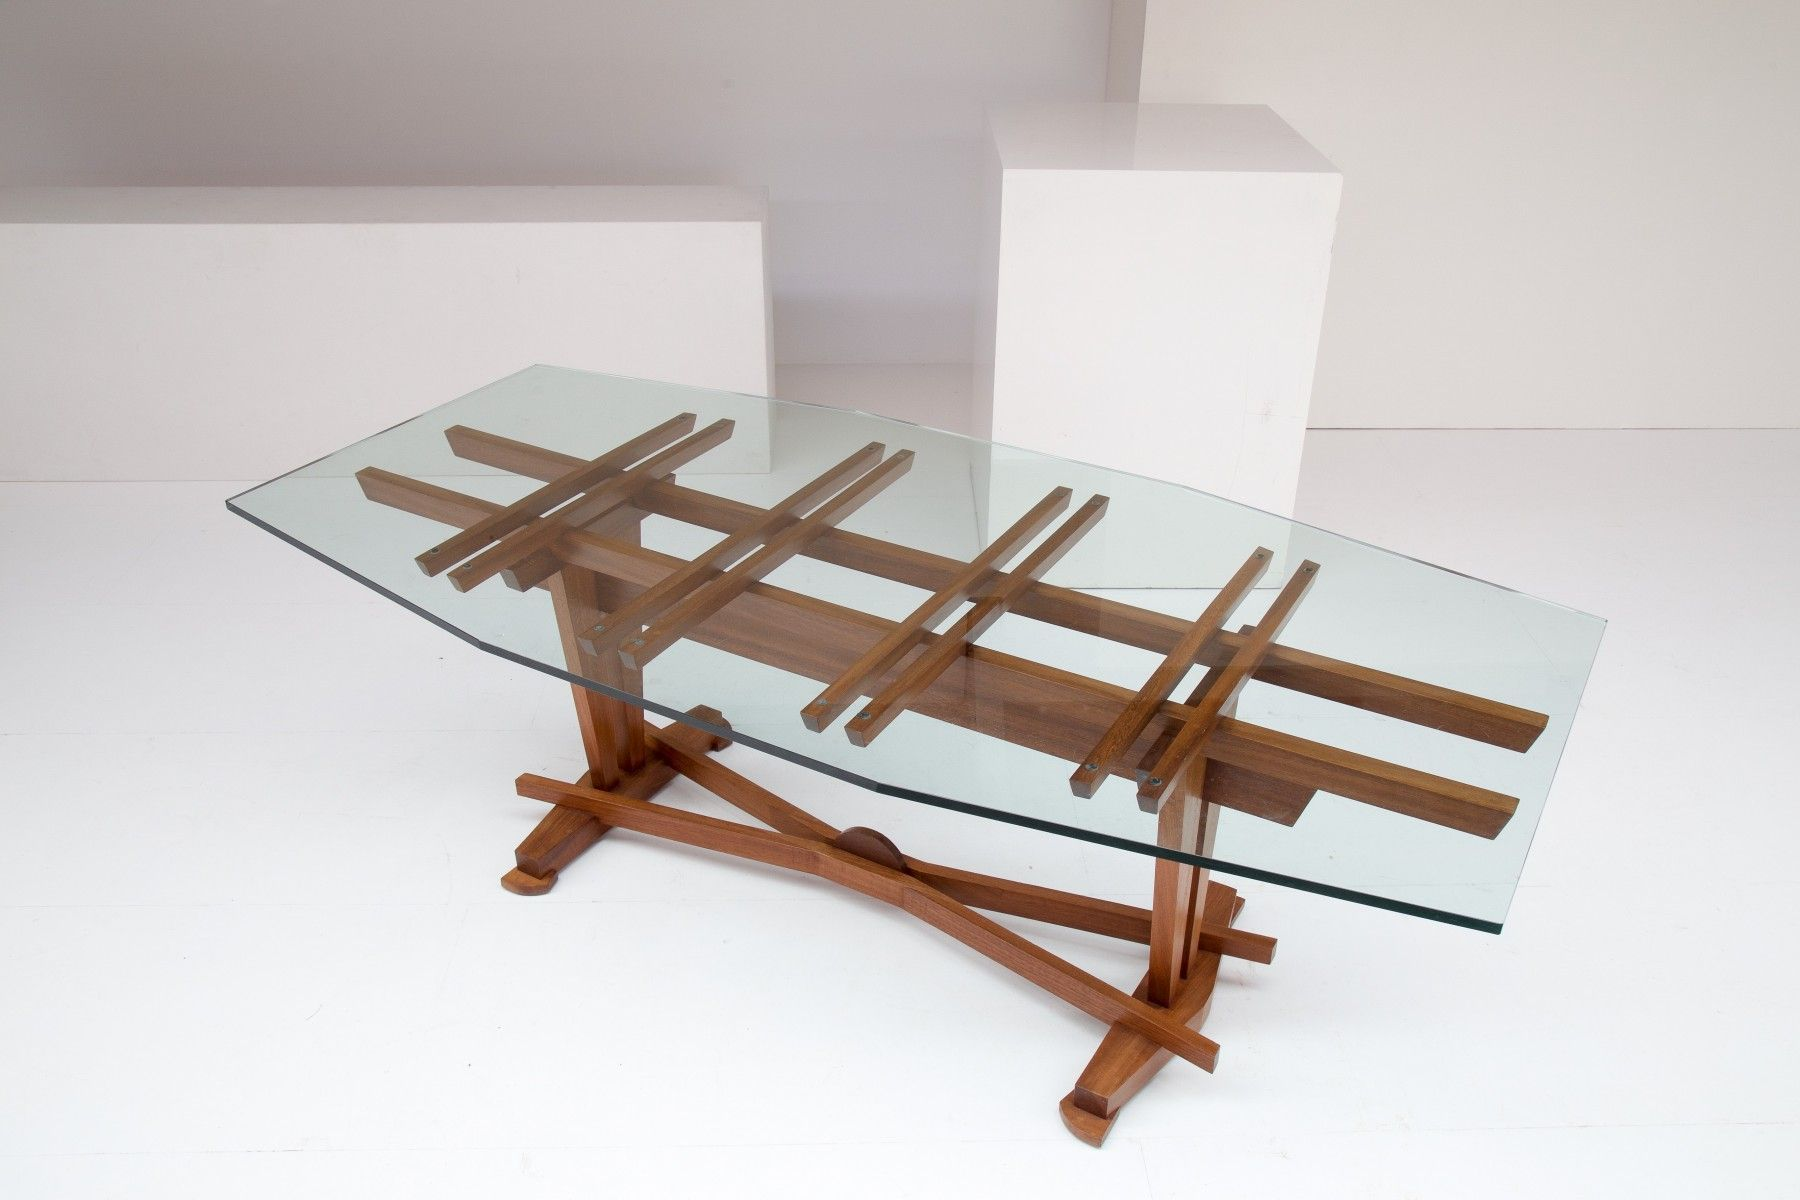 Vintage Wood & Glass Dining Table By Koenraad Dewulf 1